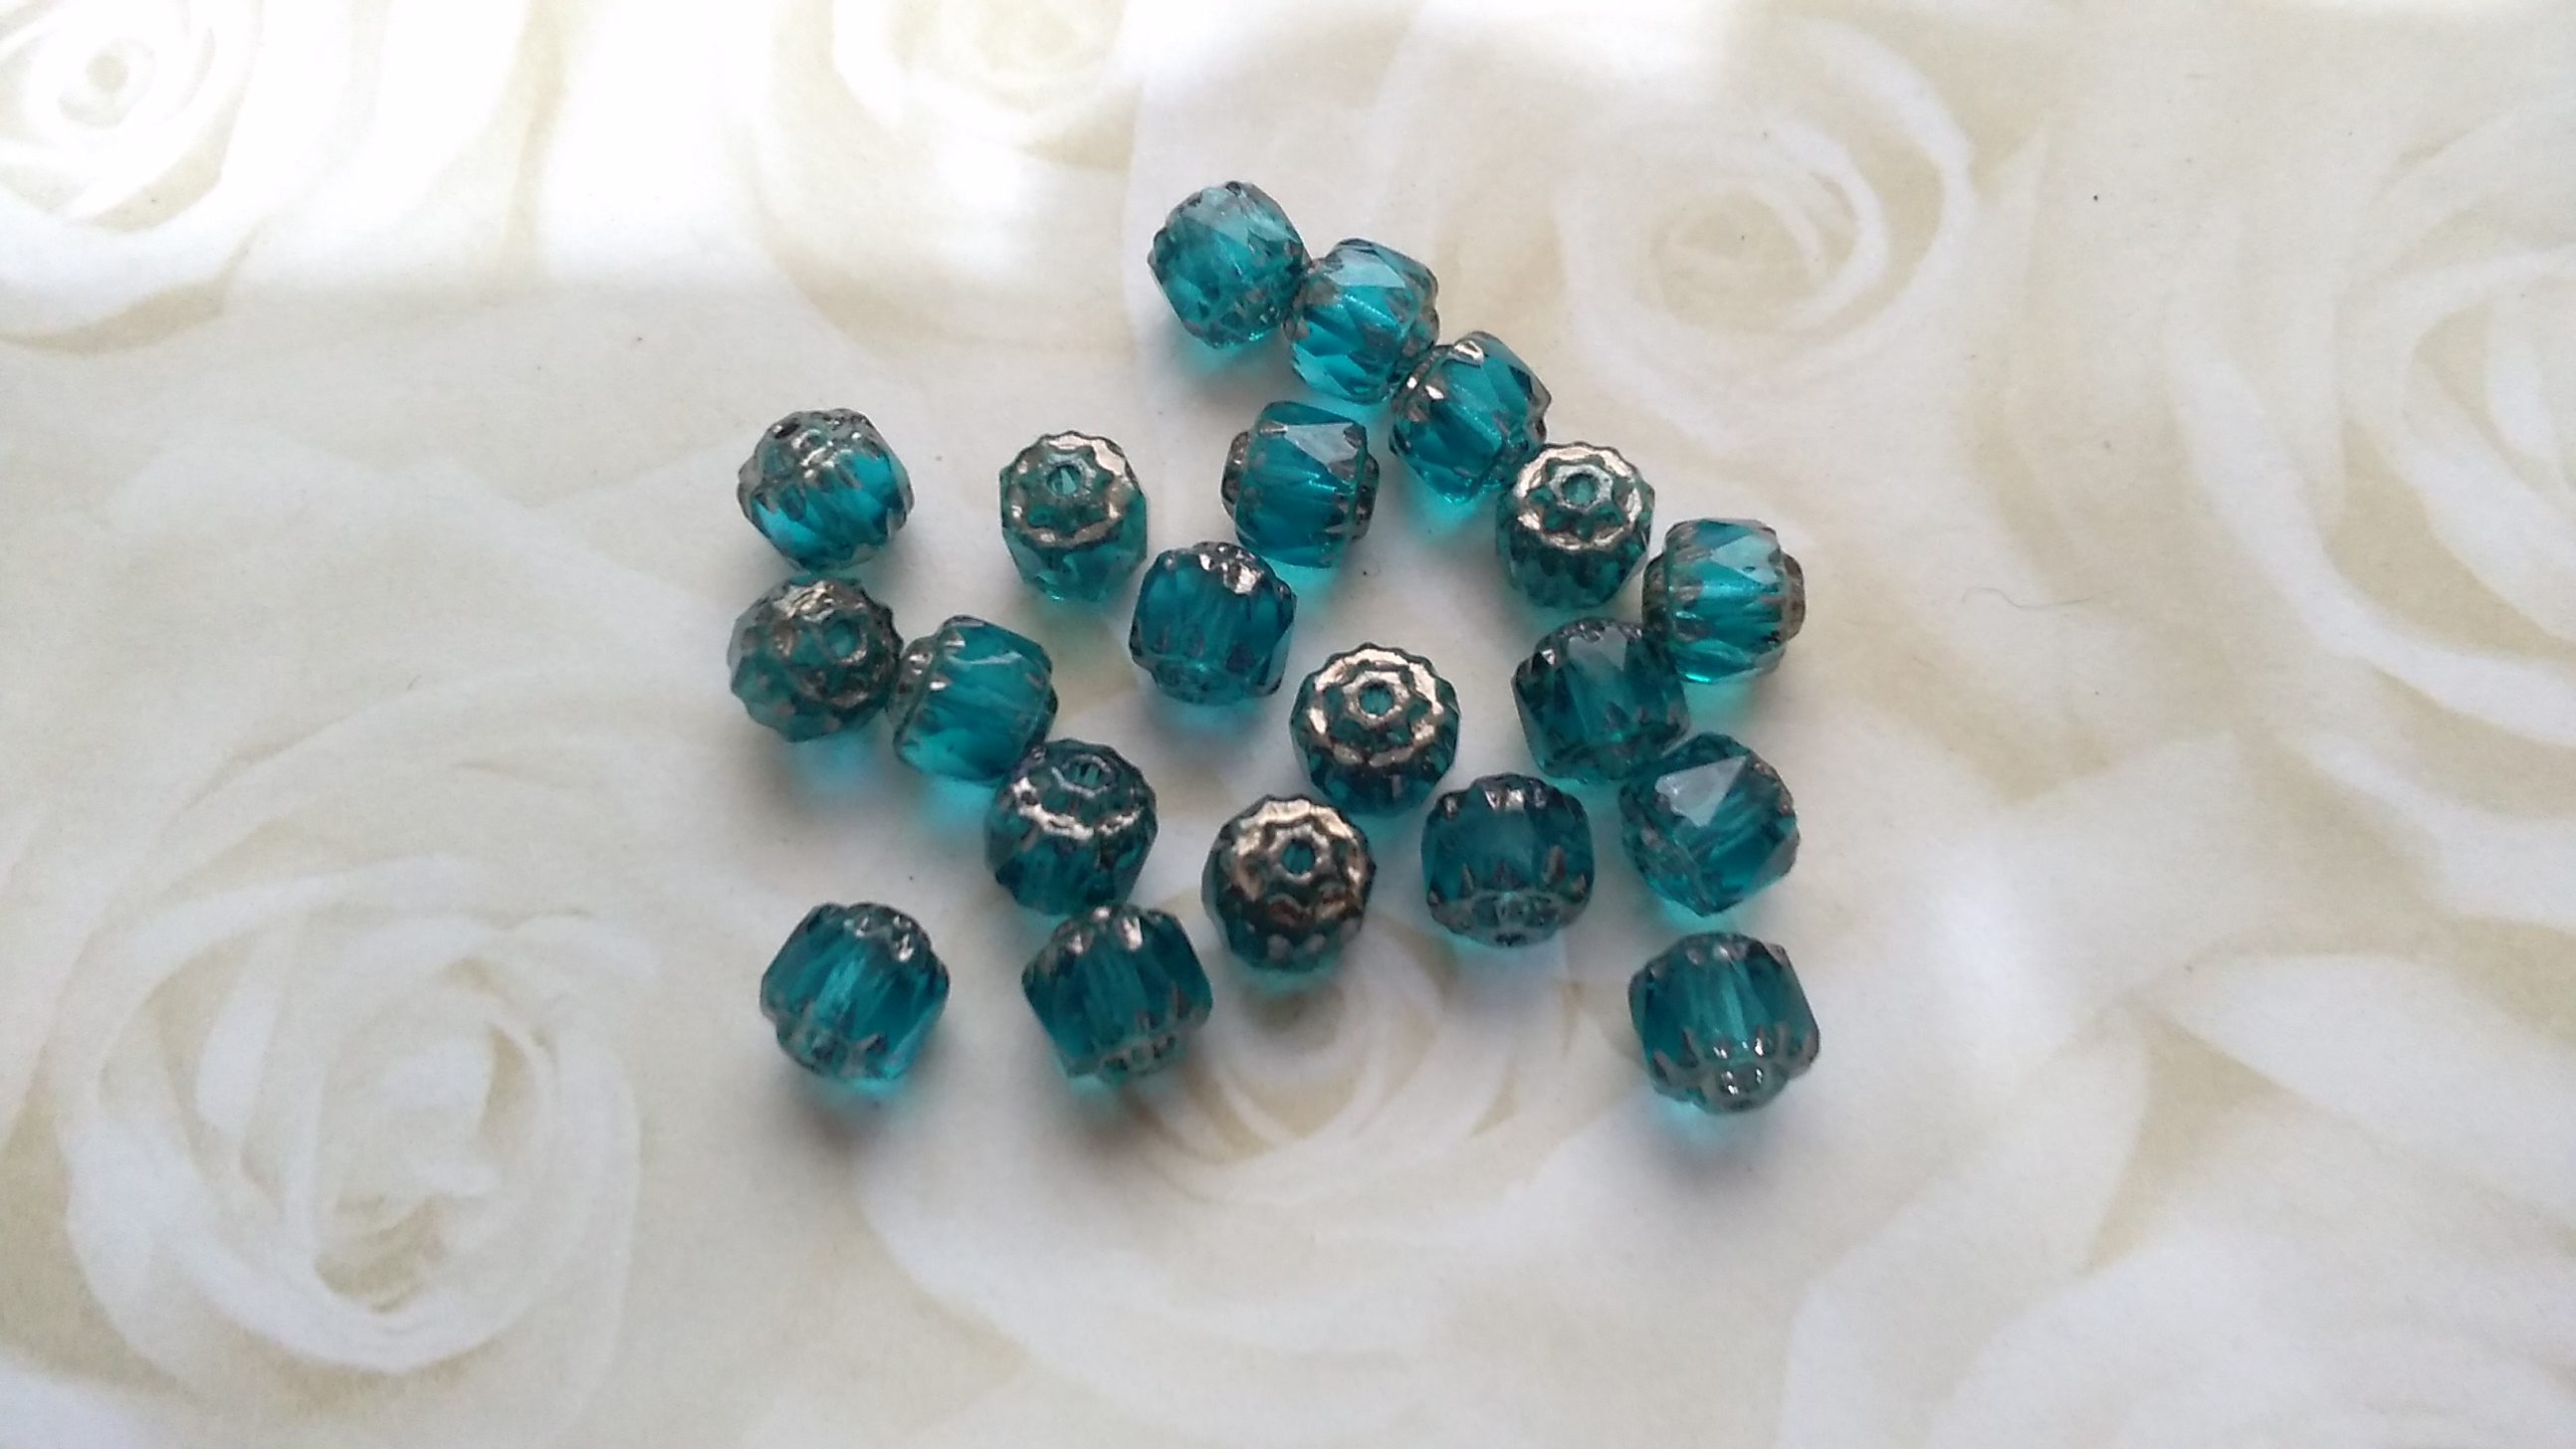 Czech 6mm Teal Cathedral Cut Beads